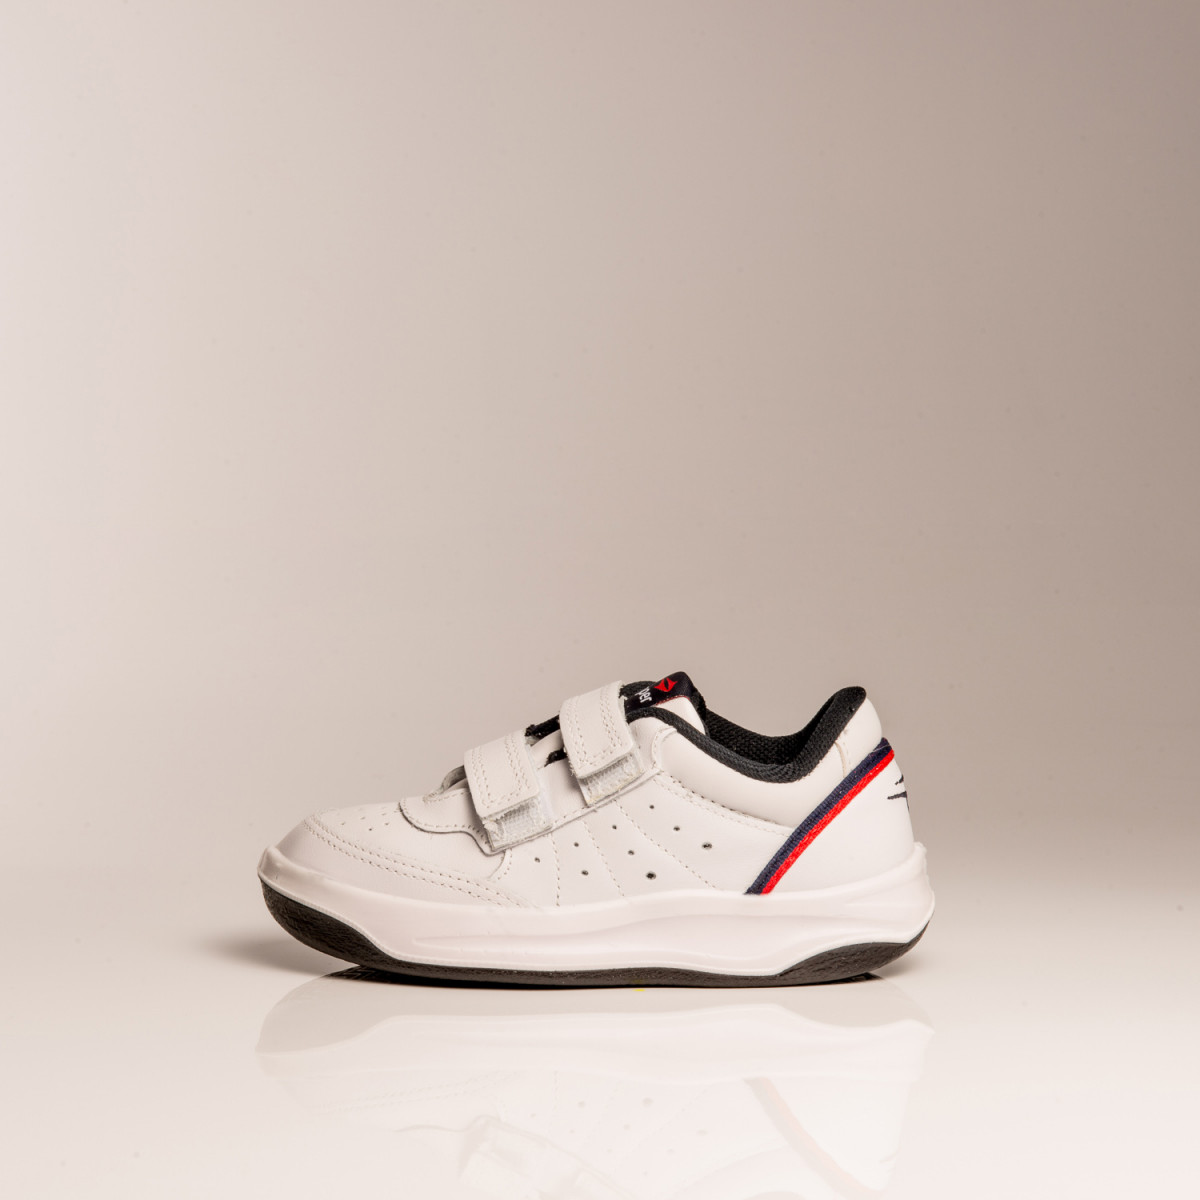 ZAPATILLAS TOPPER X FORCER KIDS VELCRO